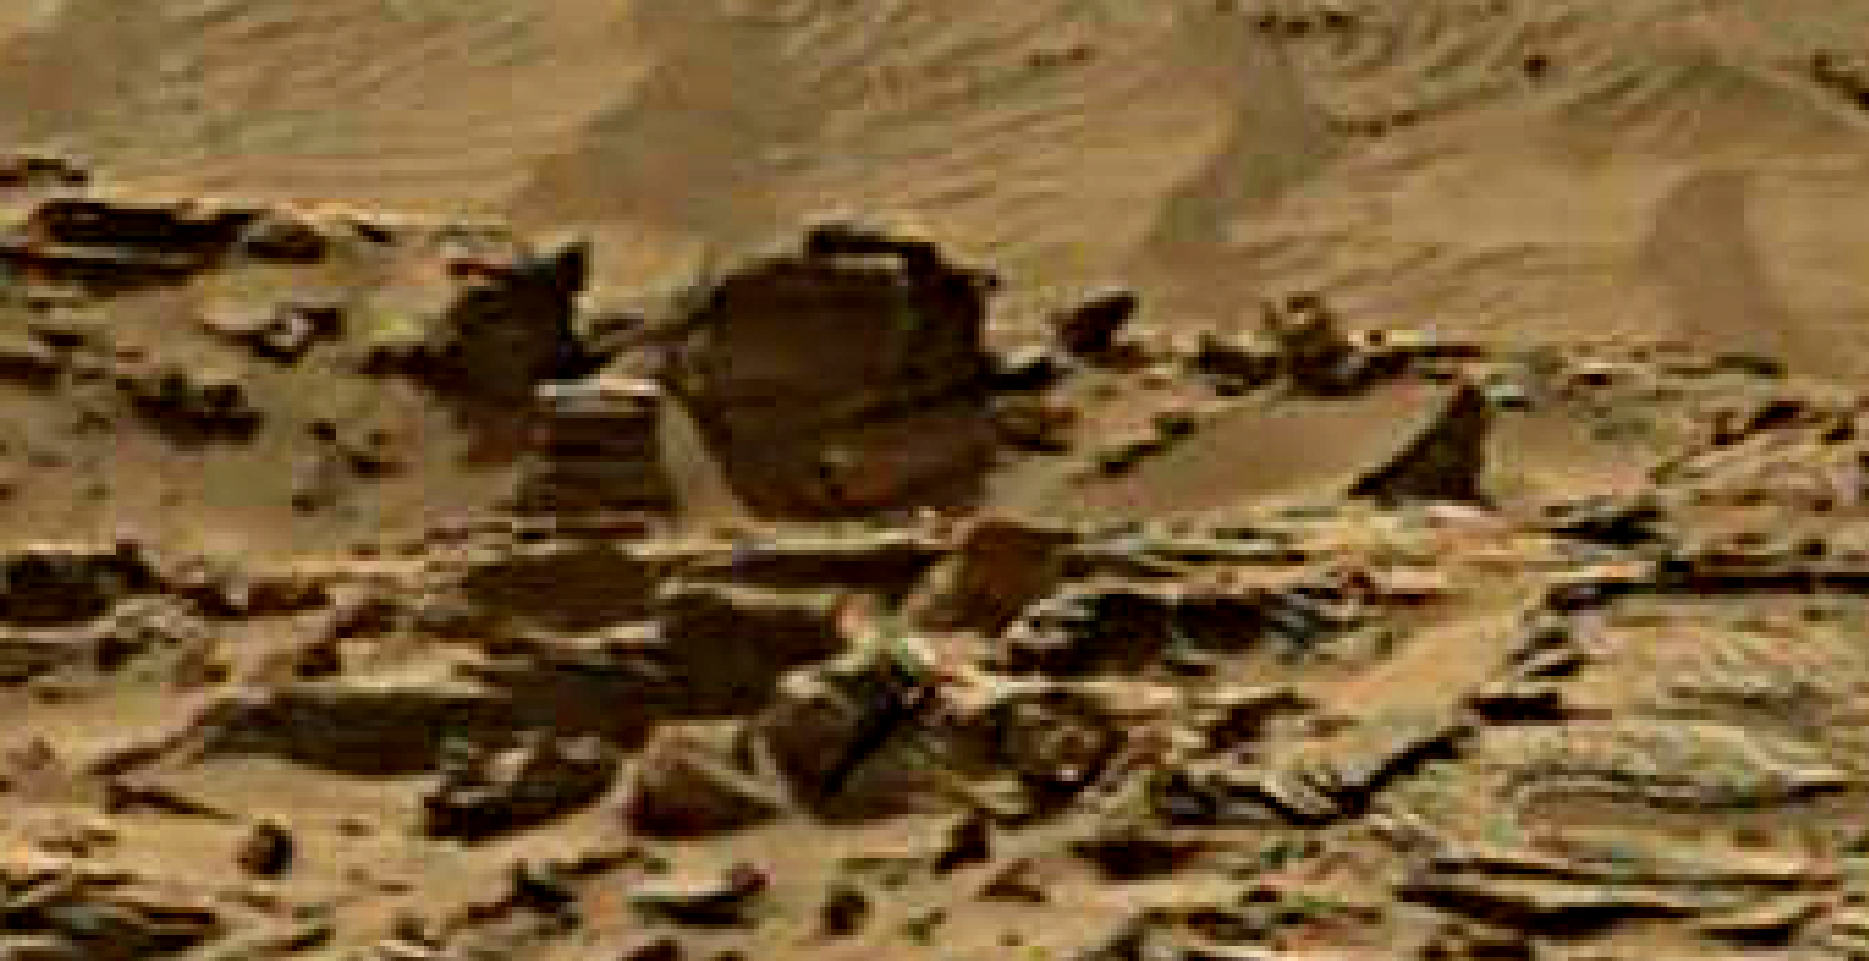 mars sol 1344 anomaly-artifacts 3 was life on mars